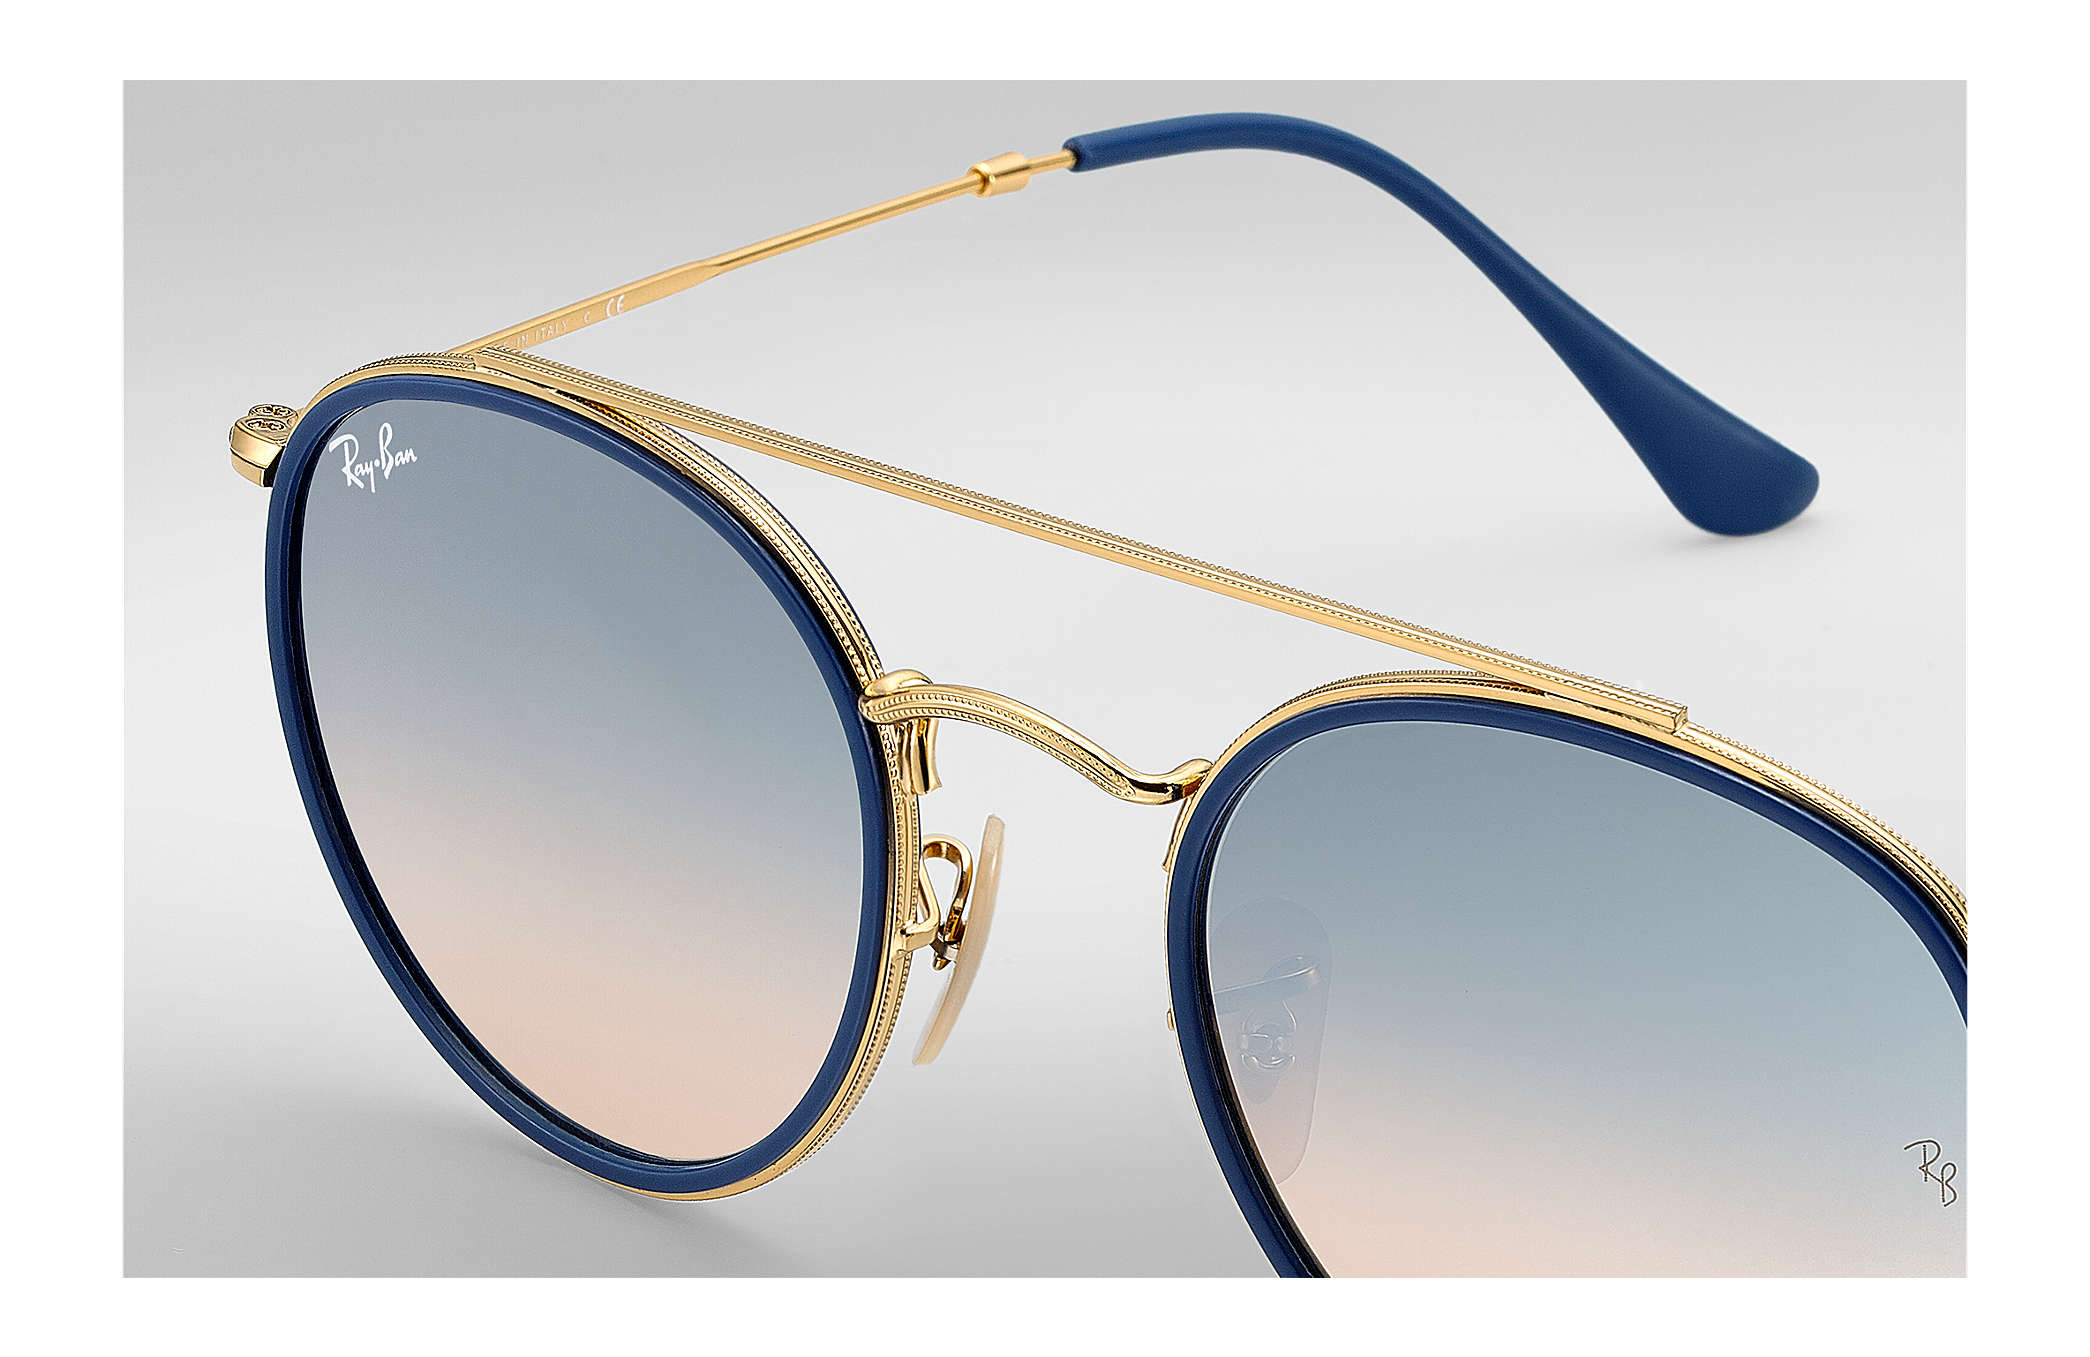 aa9f74fd3 Ray-Ban Round Double Bridge RB3647N Gold - Metal - Silver Lenses ...